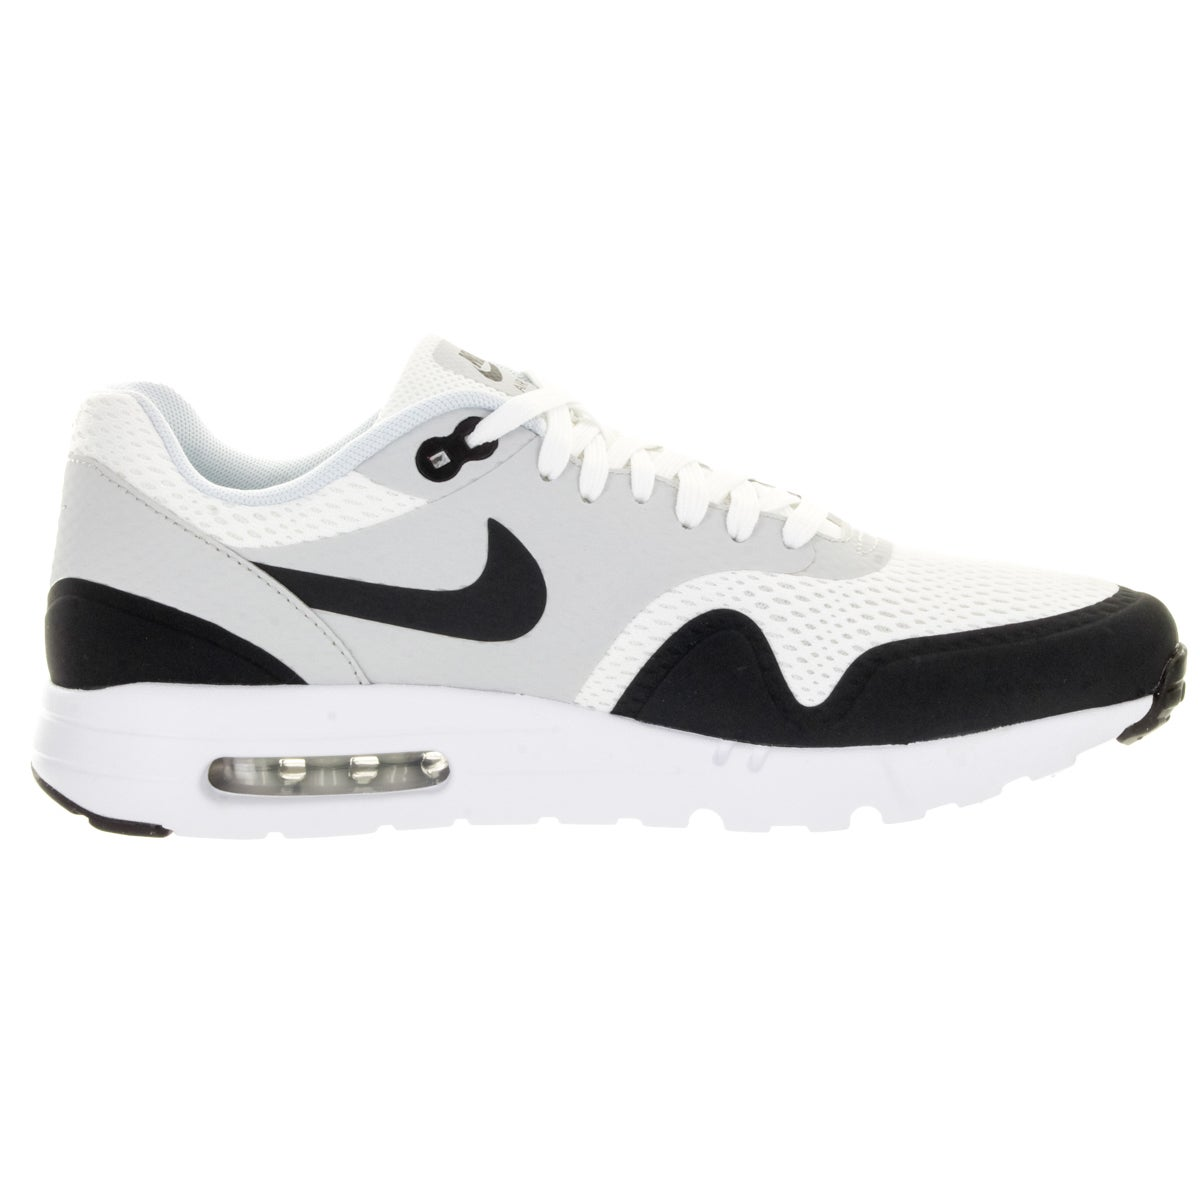 quality design dfe89 54c7e Shop Nike Men s Air Max 1 Ultra Essential White Anthracite Pure Platinum  Running Shoe - Free Shipping Today - Overstock - 12328852